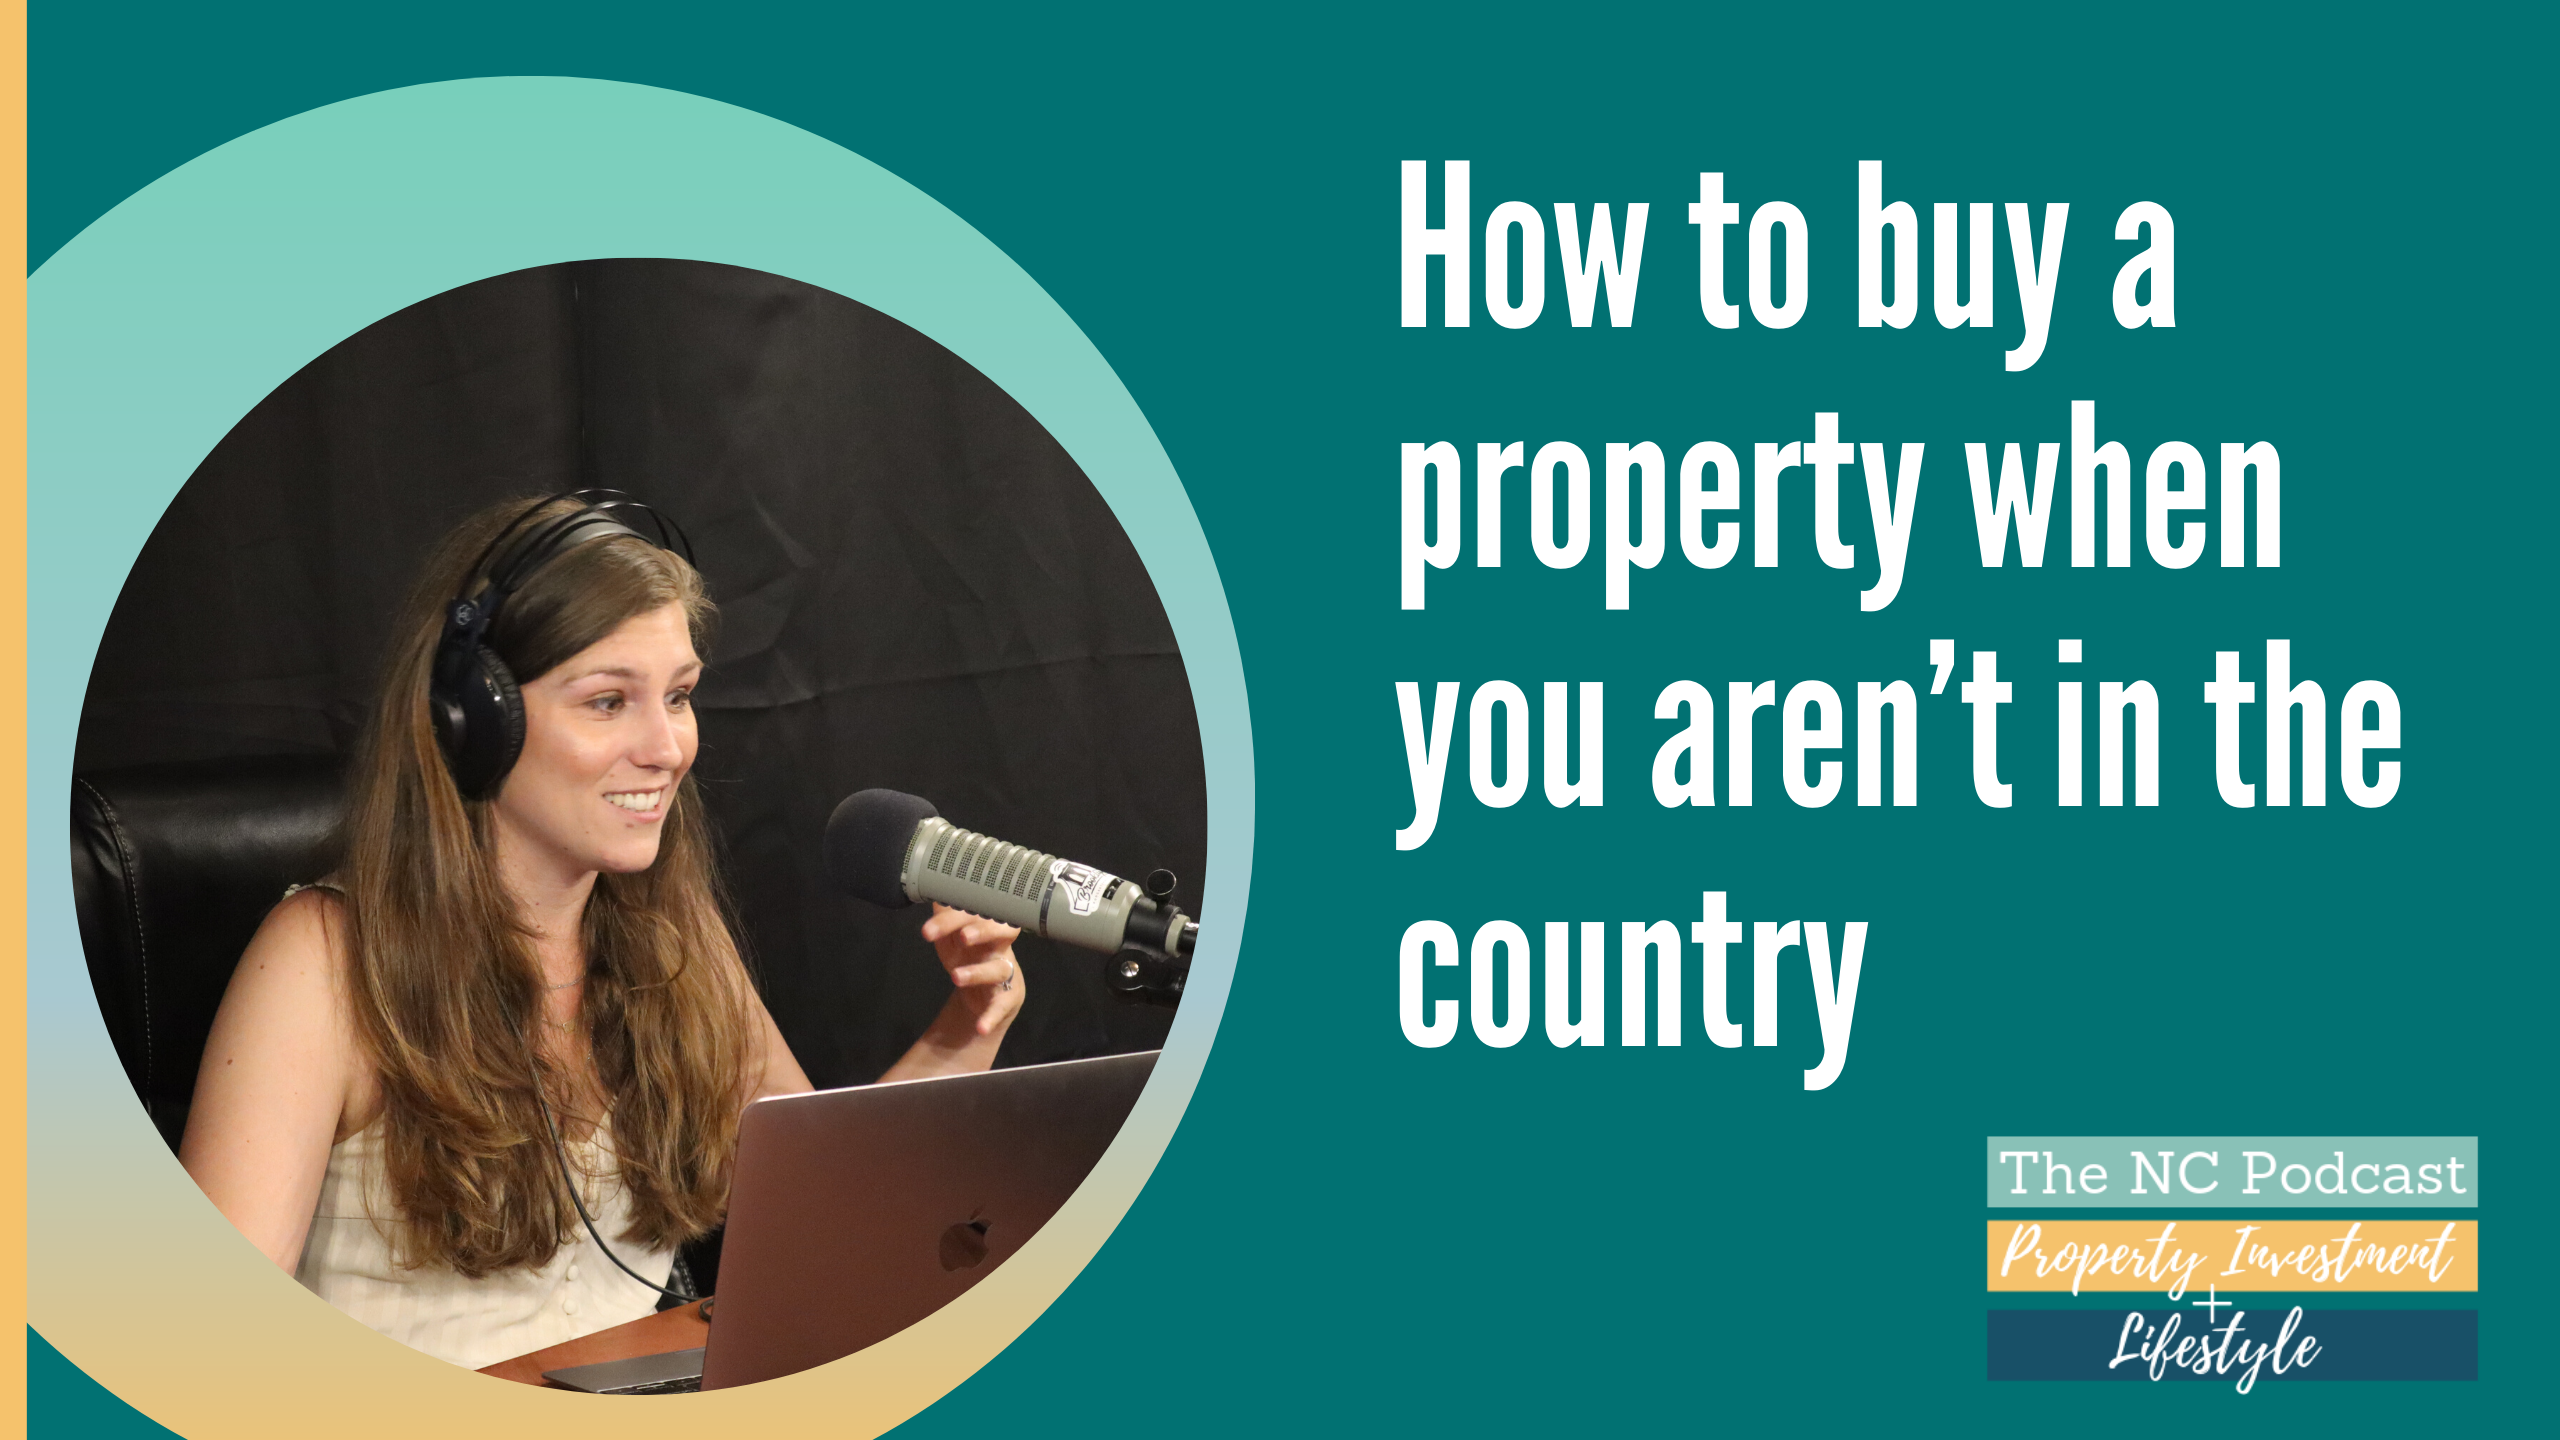 How to buy a property when you aren't in the country